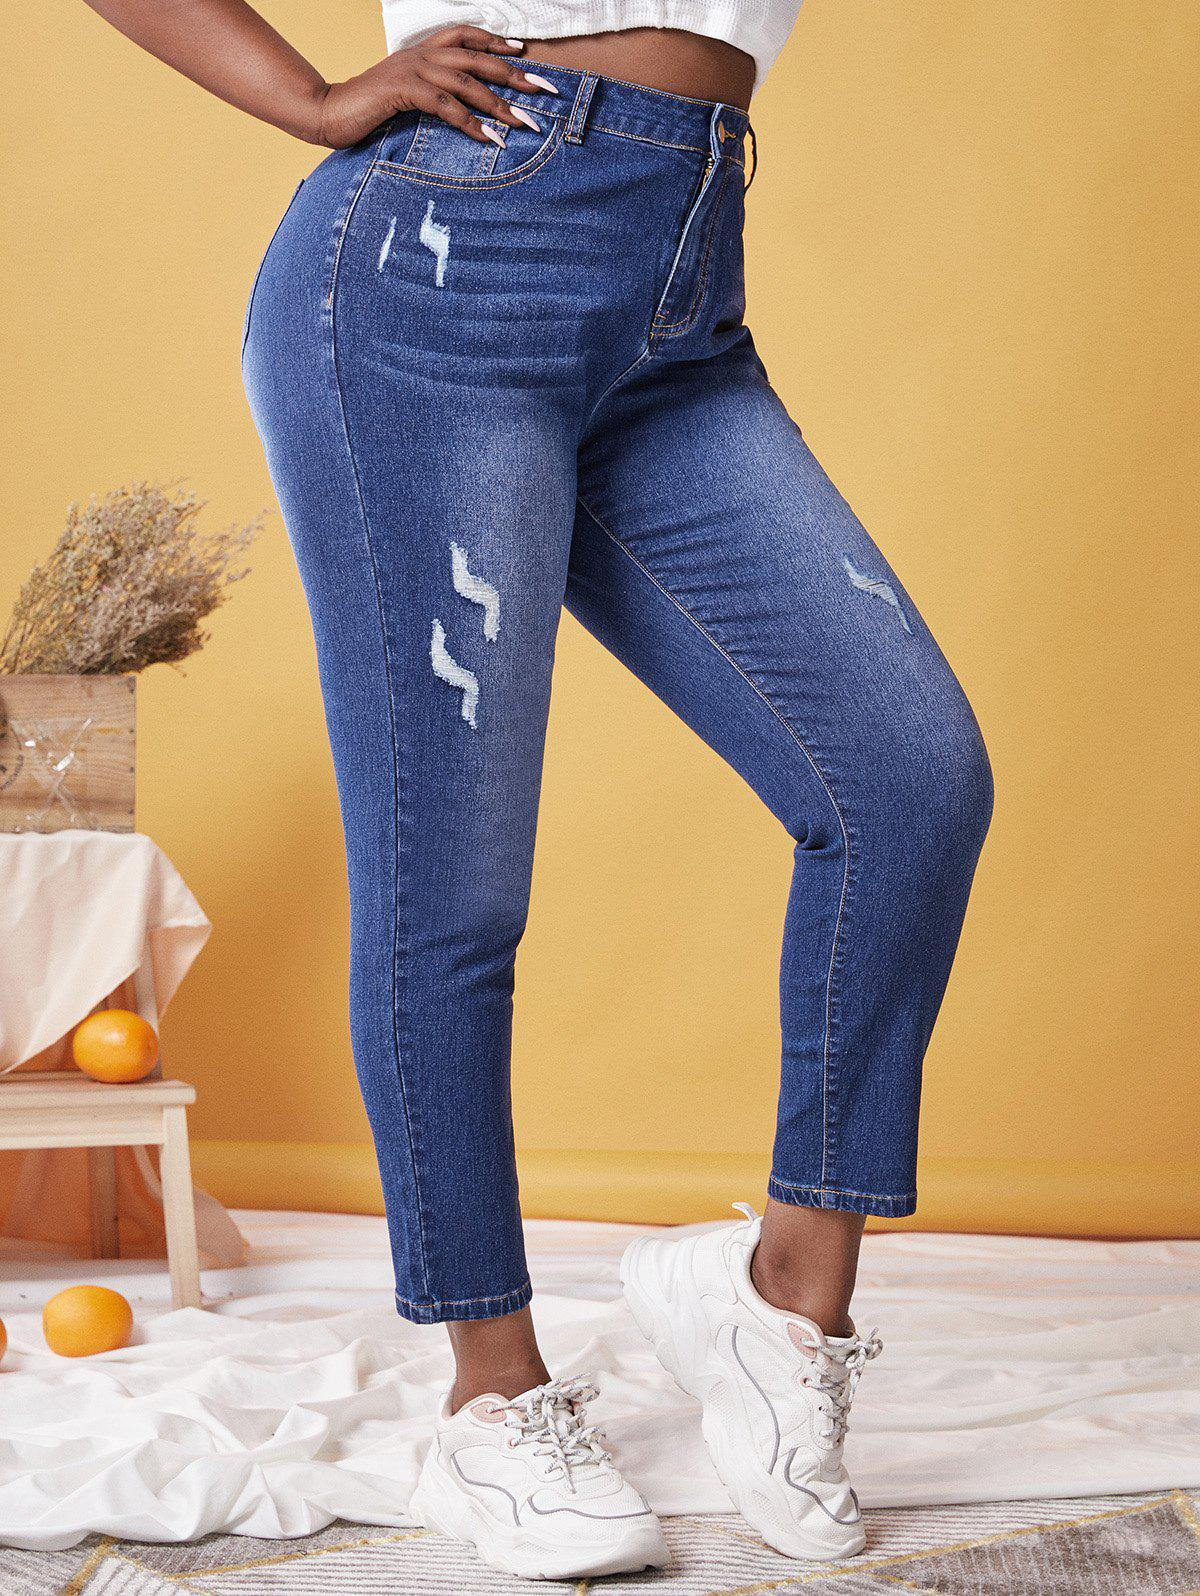 Plus Size High Waist Faded Ripped Skinny Jeans - DEEP BLUE 5X